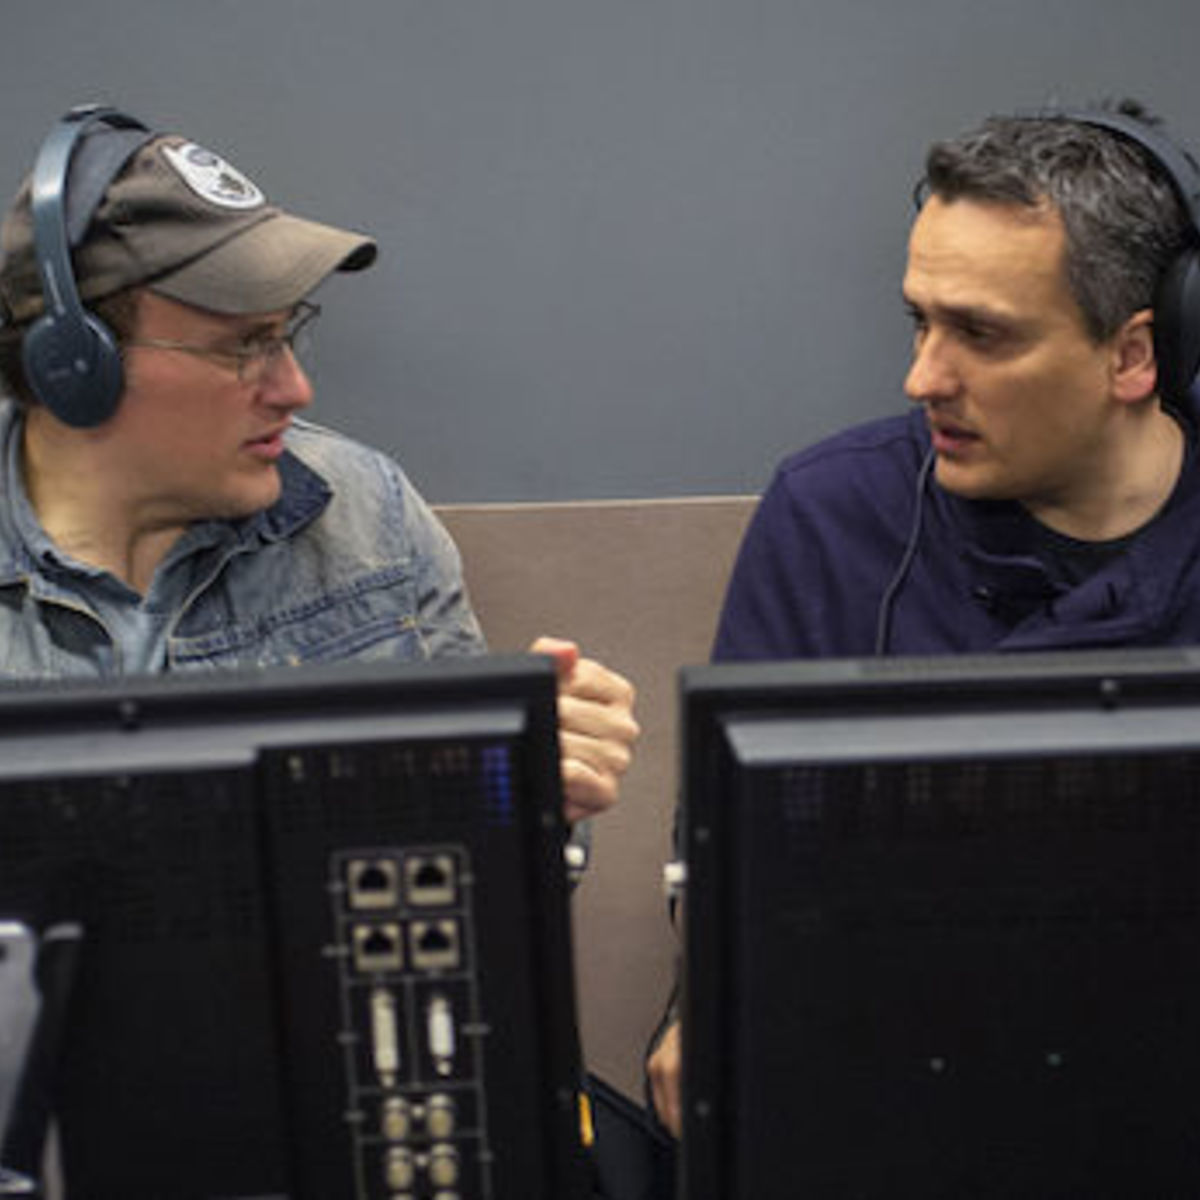 Captain-America-2-Official-Photo-Russo-Brothers-Directors.jpg